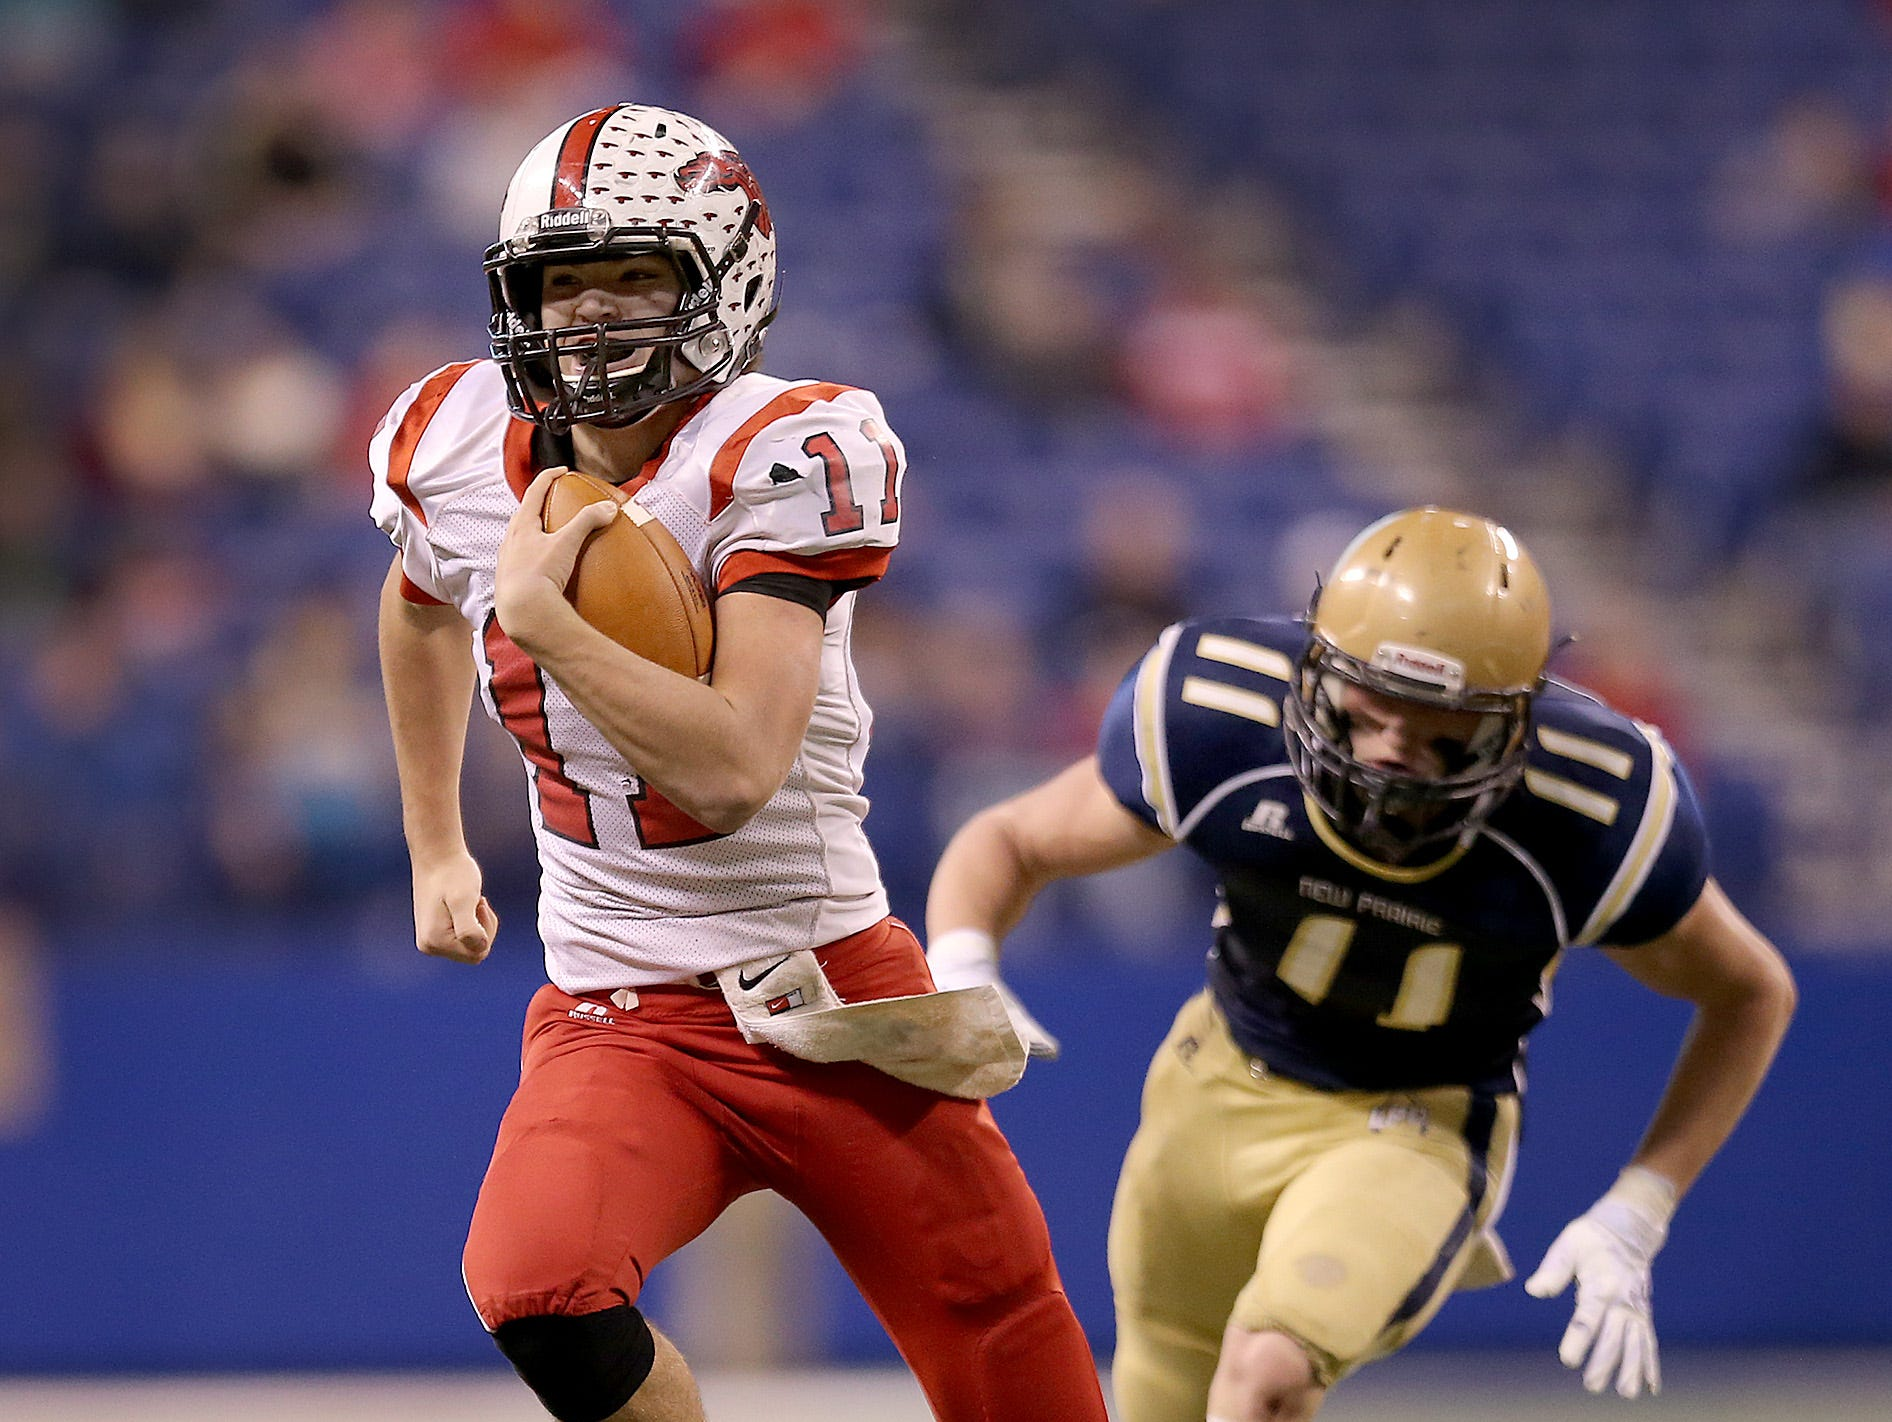 New Palestine's QB Alex Neligh put on a show in last year's 4A state title game vs. New Prairie.